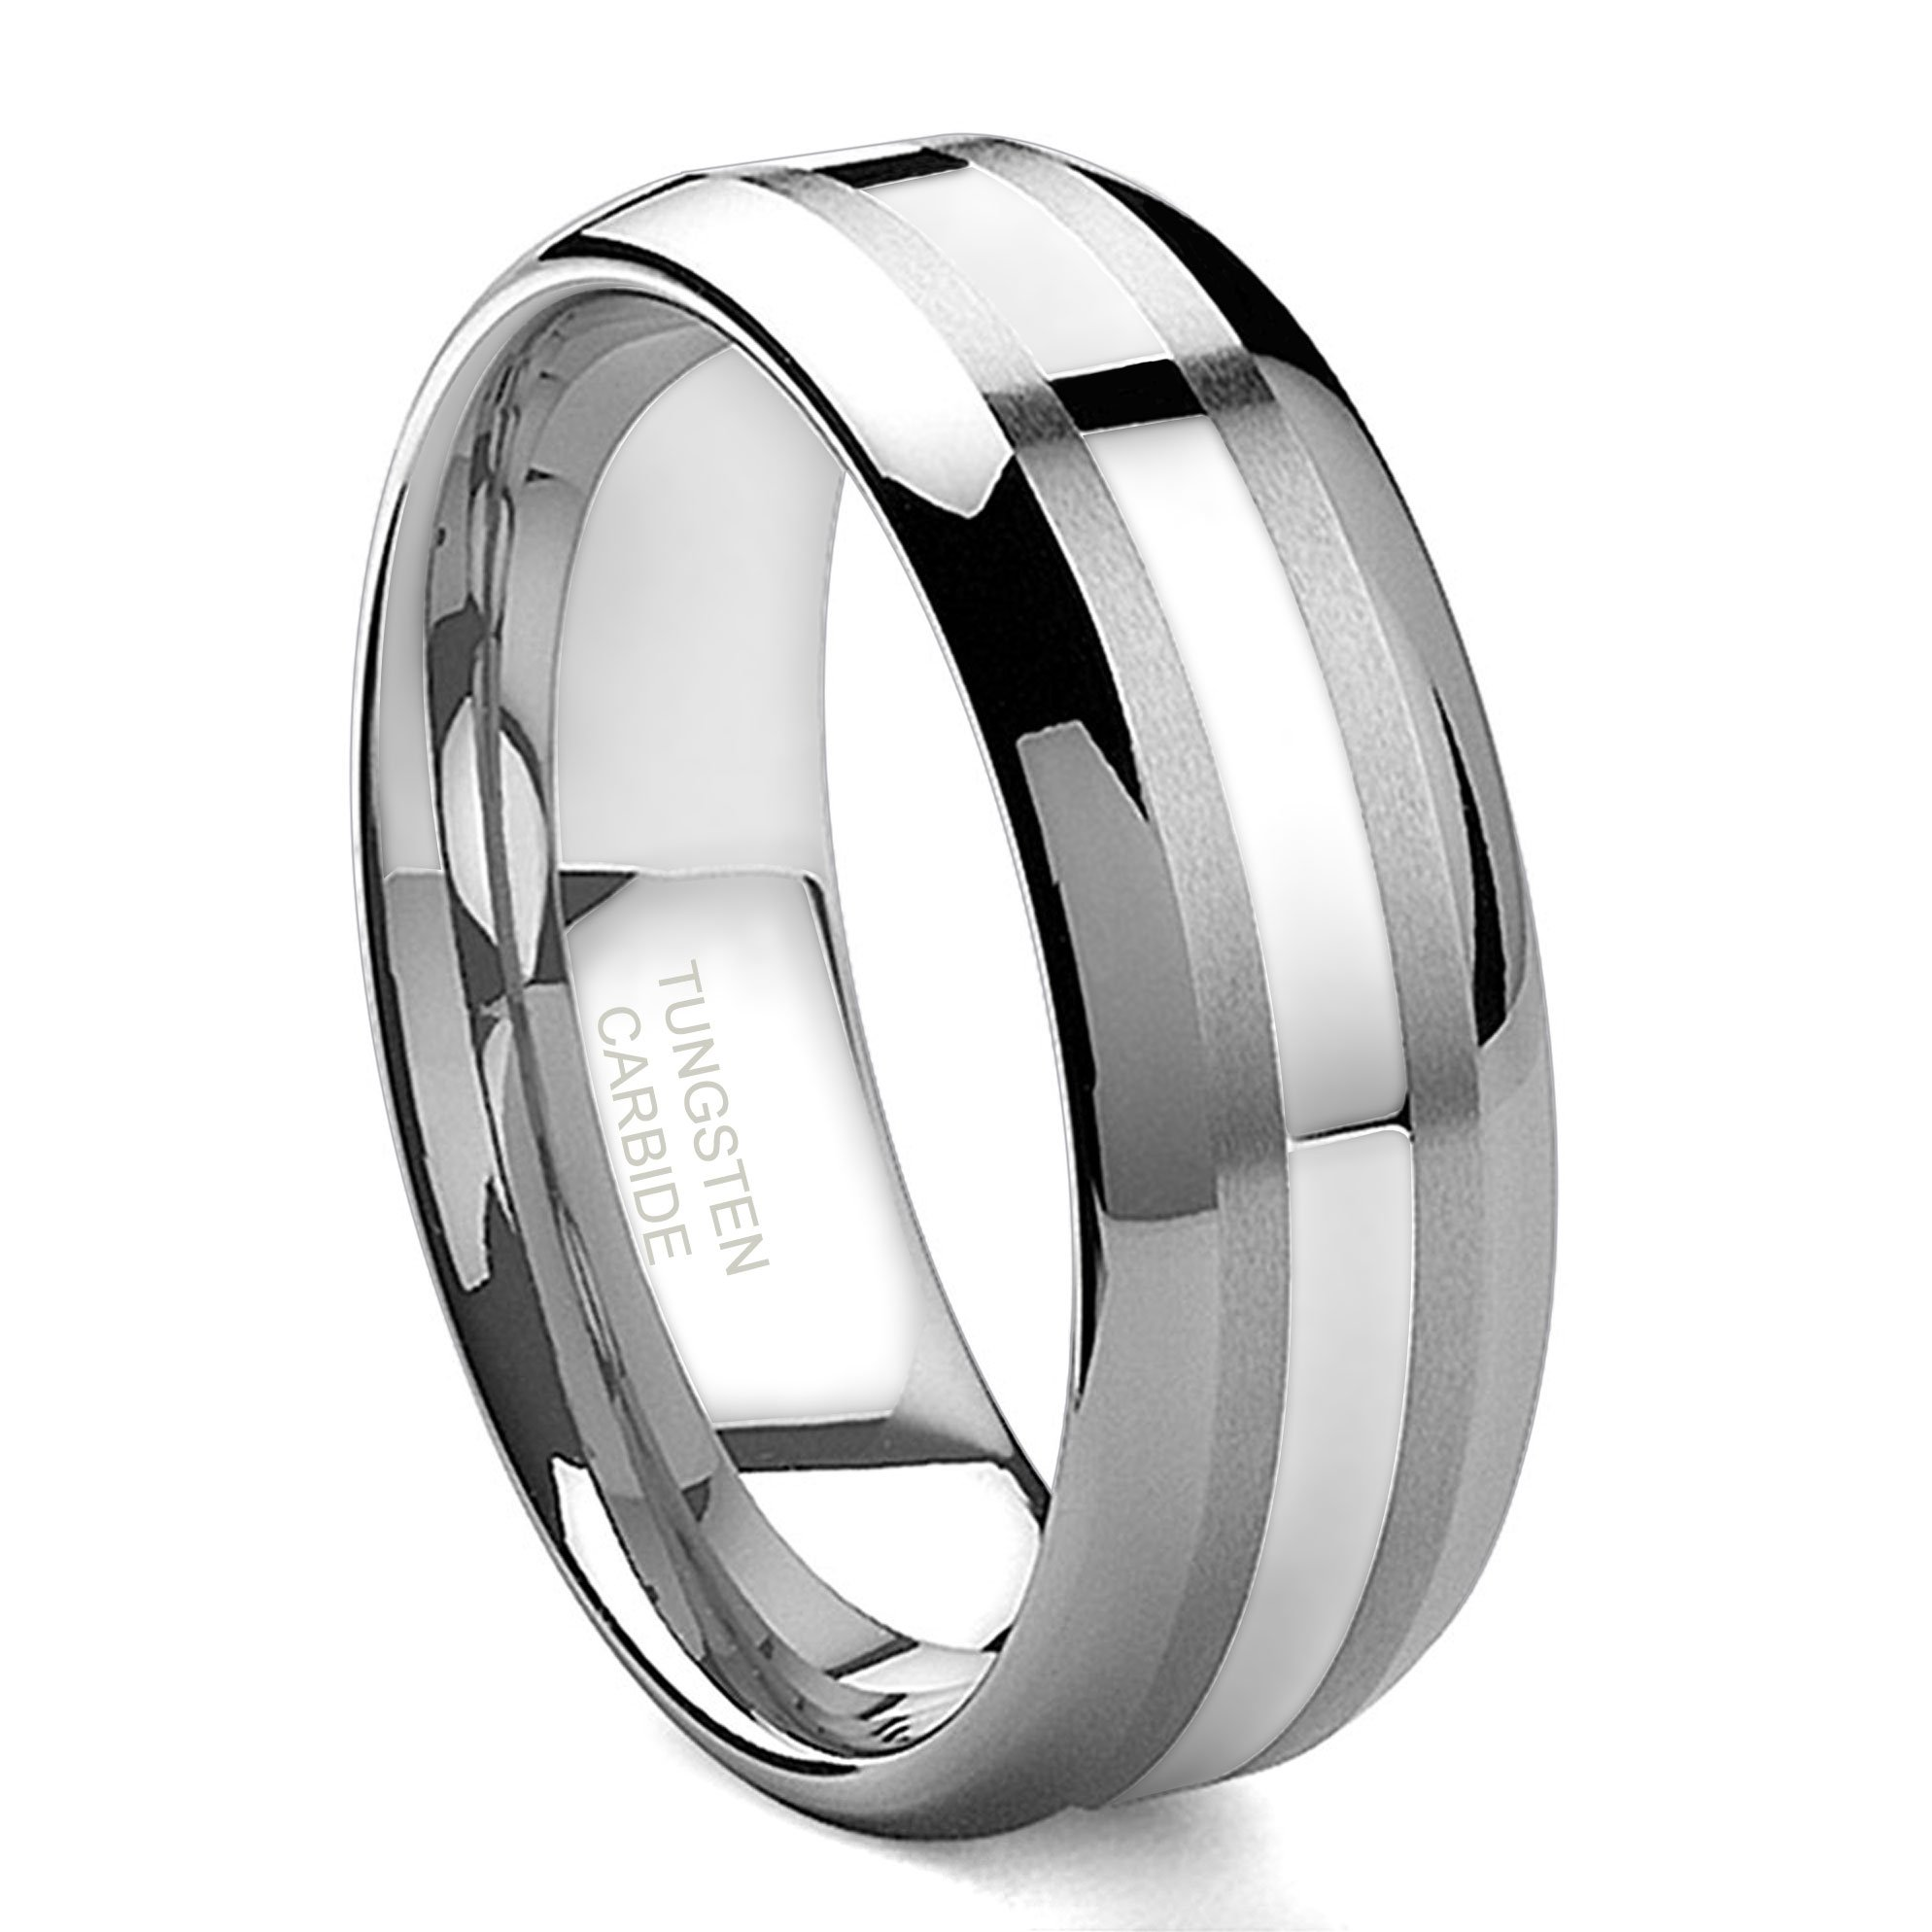 8MM Tungsten Carbide 14K White Gold Inlay Wedding Band Ring Sz 11.0 by Hollywood Pro